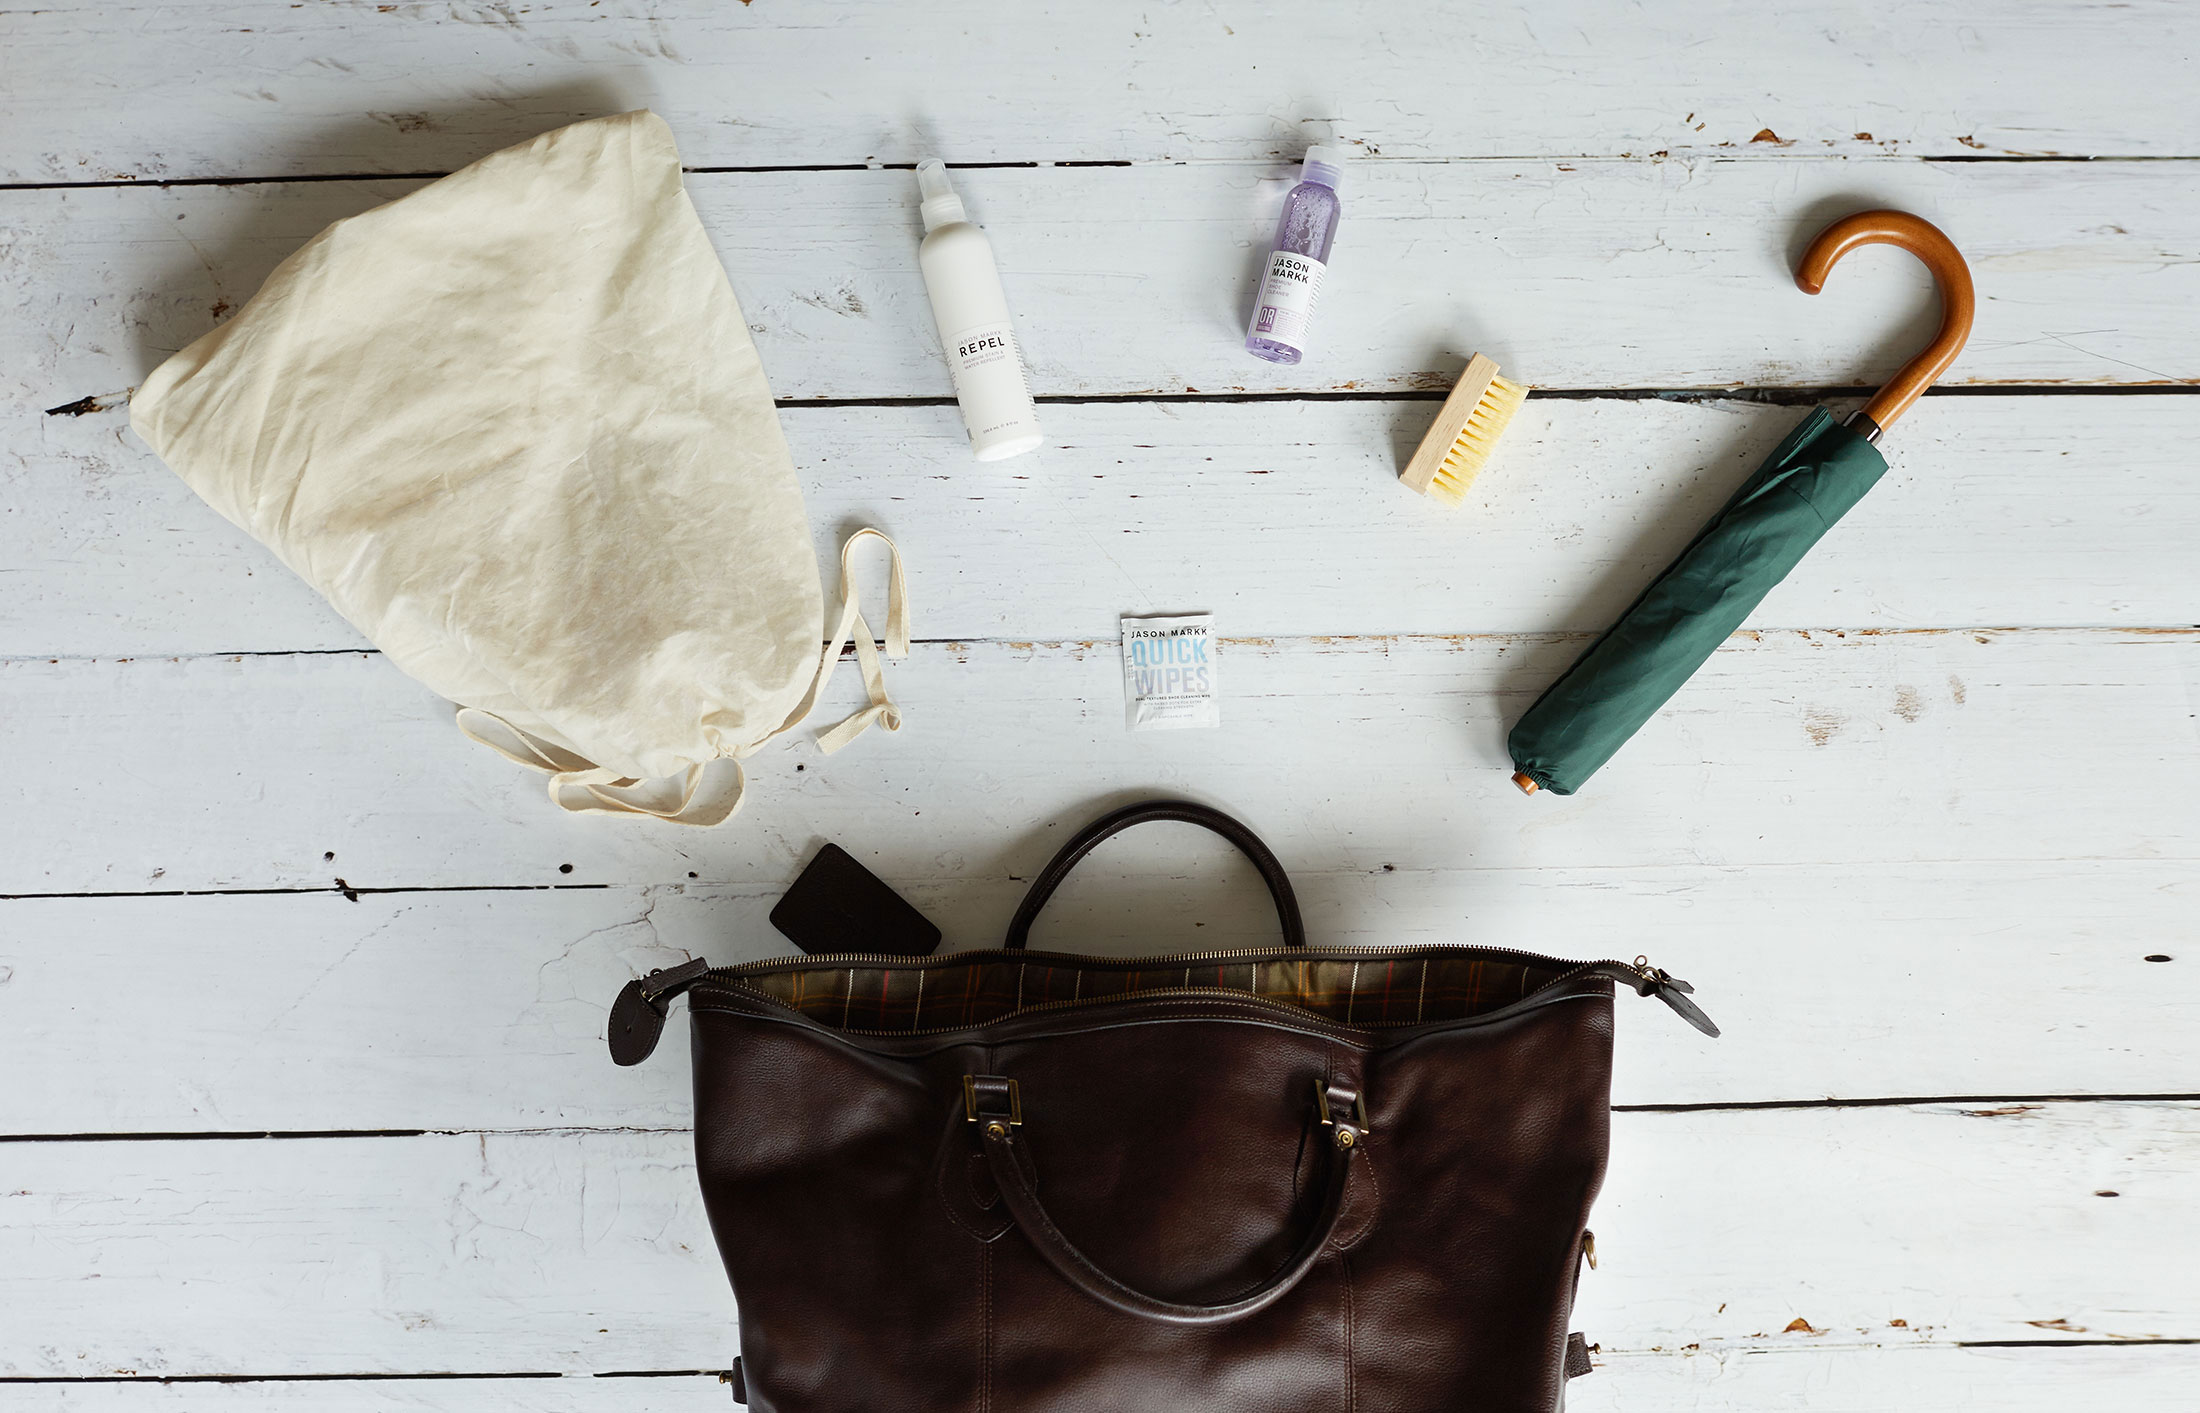 How to look after a leather bag